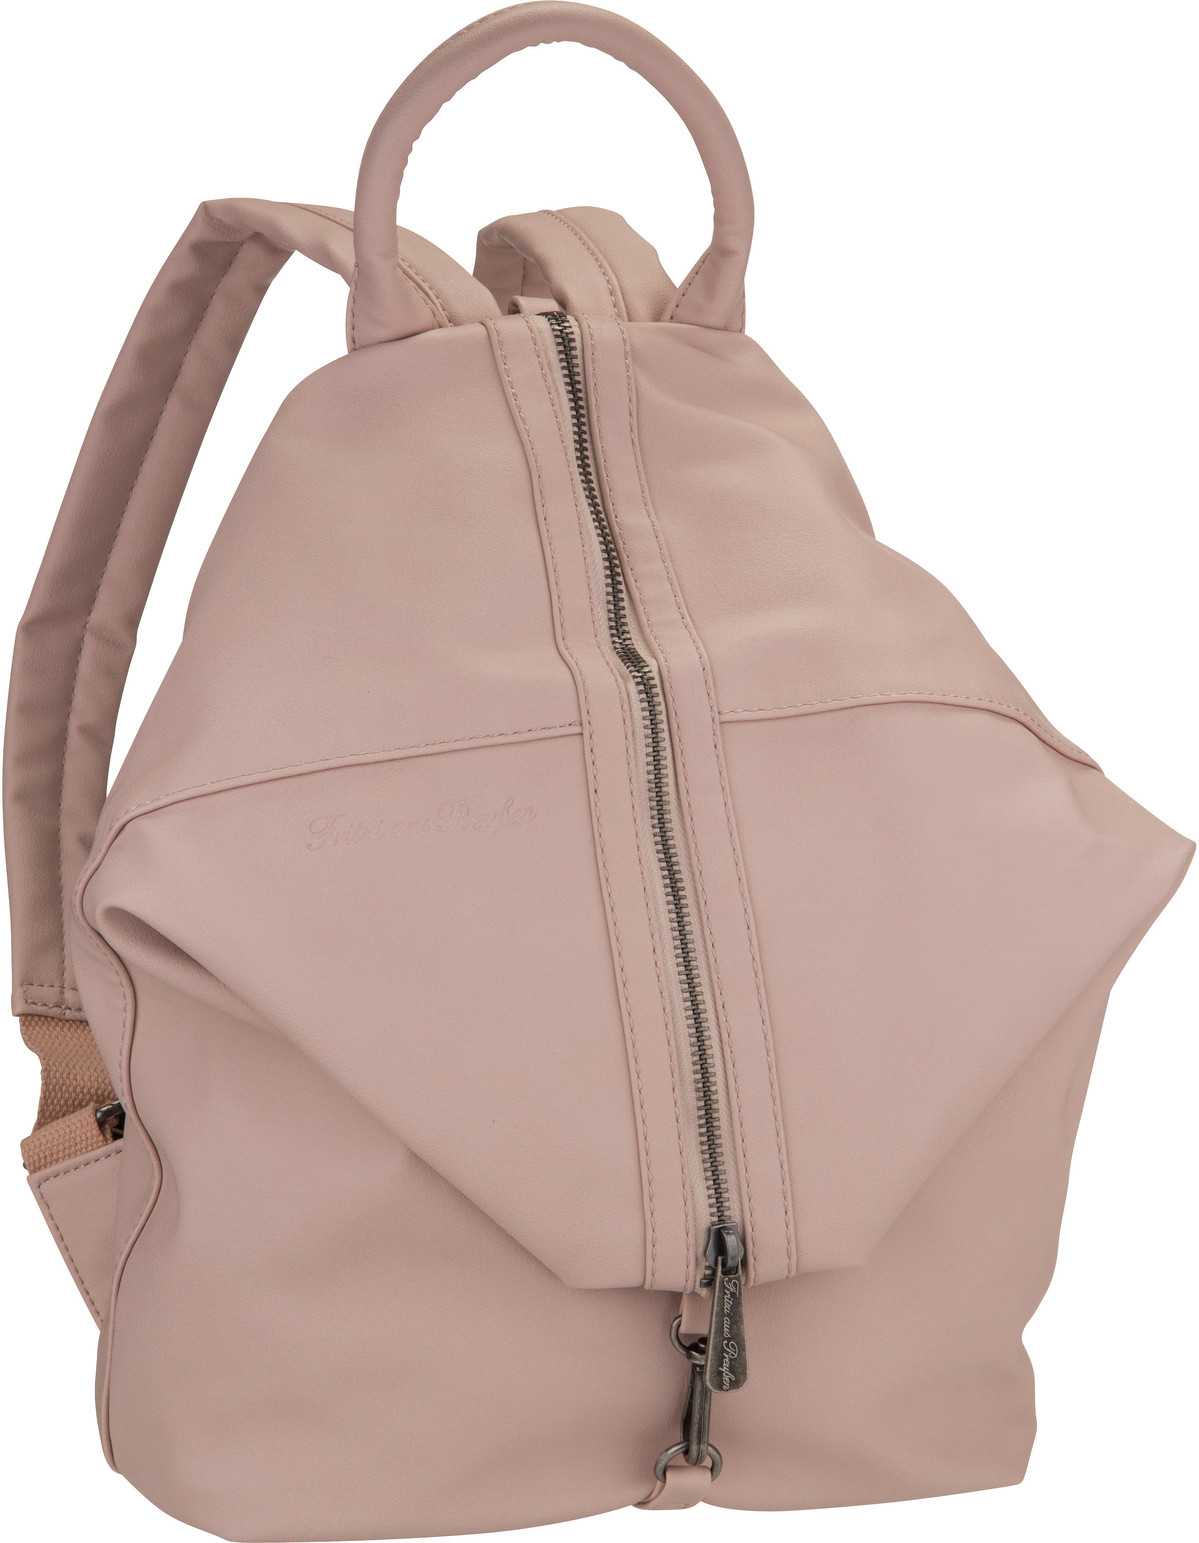 Rucksack / Daypack Marit Reloaded Philo Light Rose